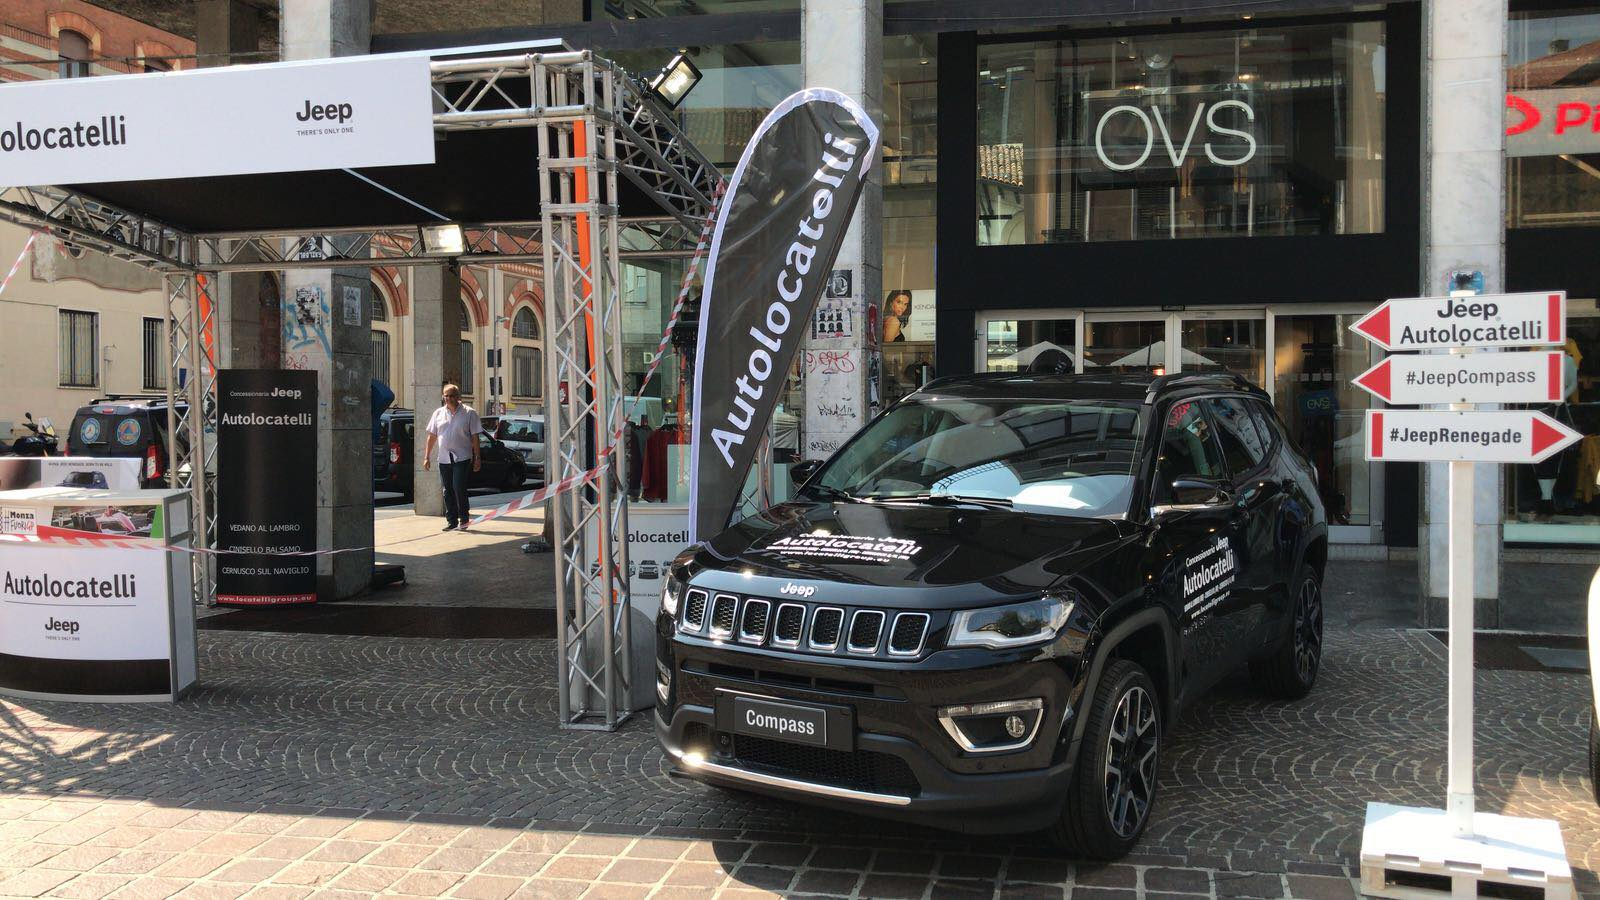 evento autolocatelli fuorigp jeep